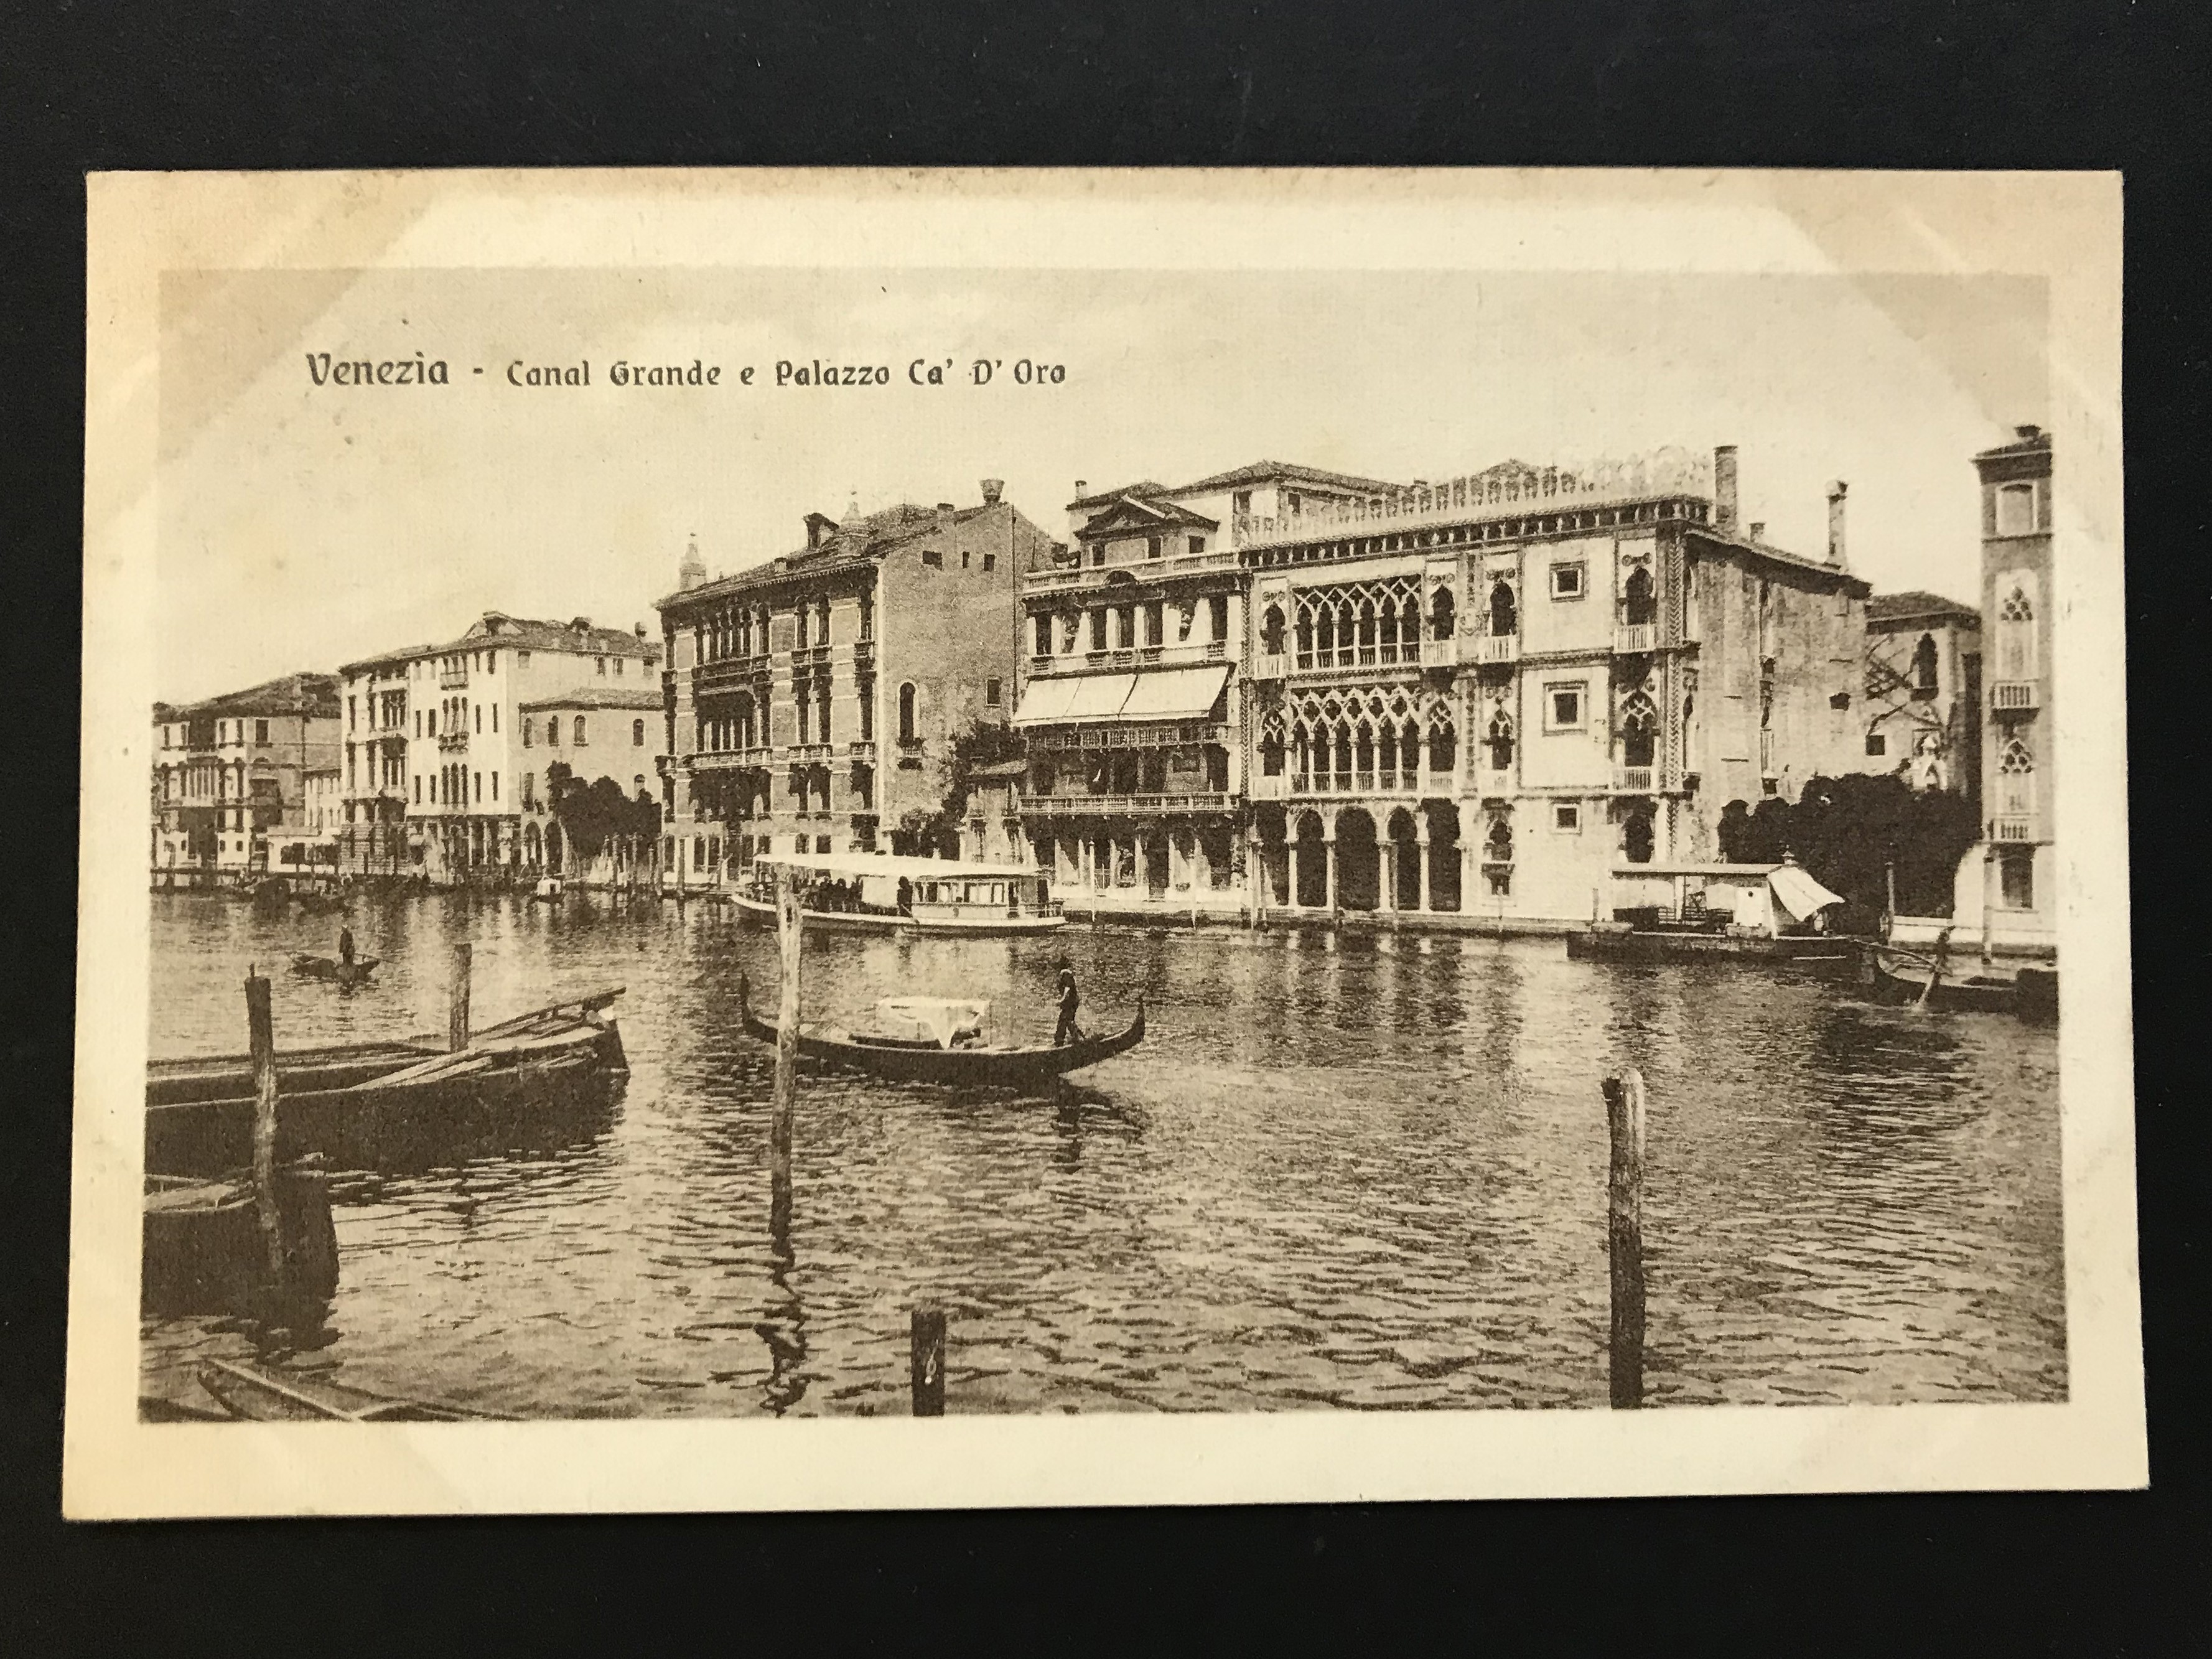 SELECTION OF VENICE RELATED POSTCARDS - Image 49 of 53